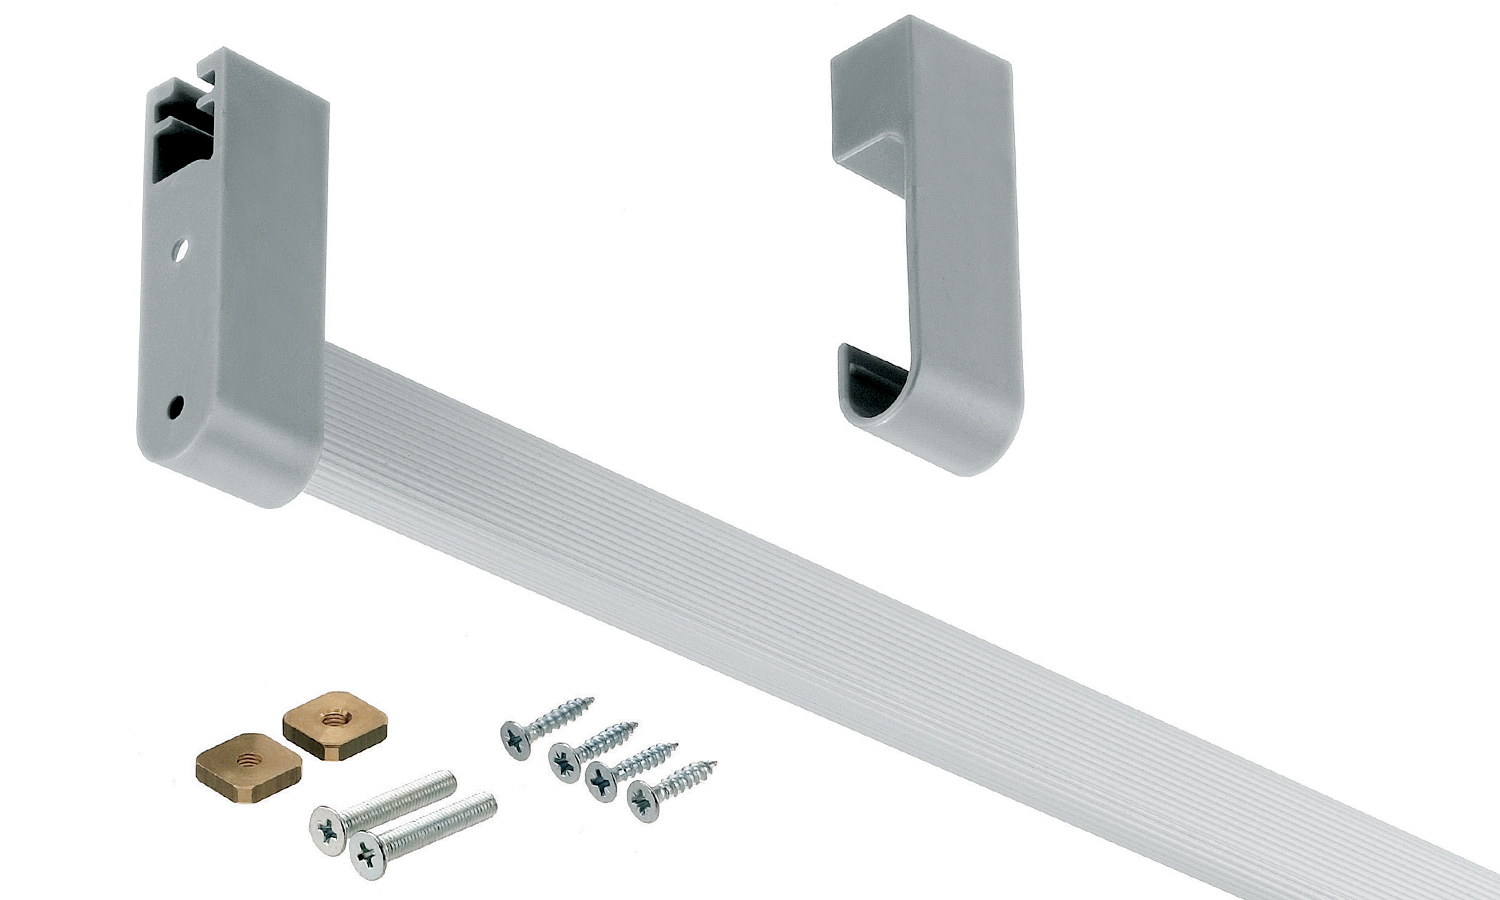 Aluminium Wardrobe Rail Inc Fixing Hardware For 900mm Cabinet